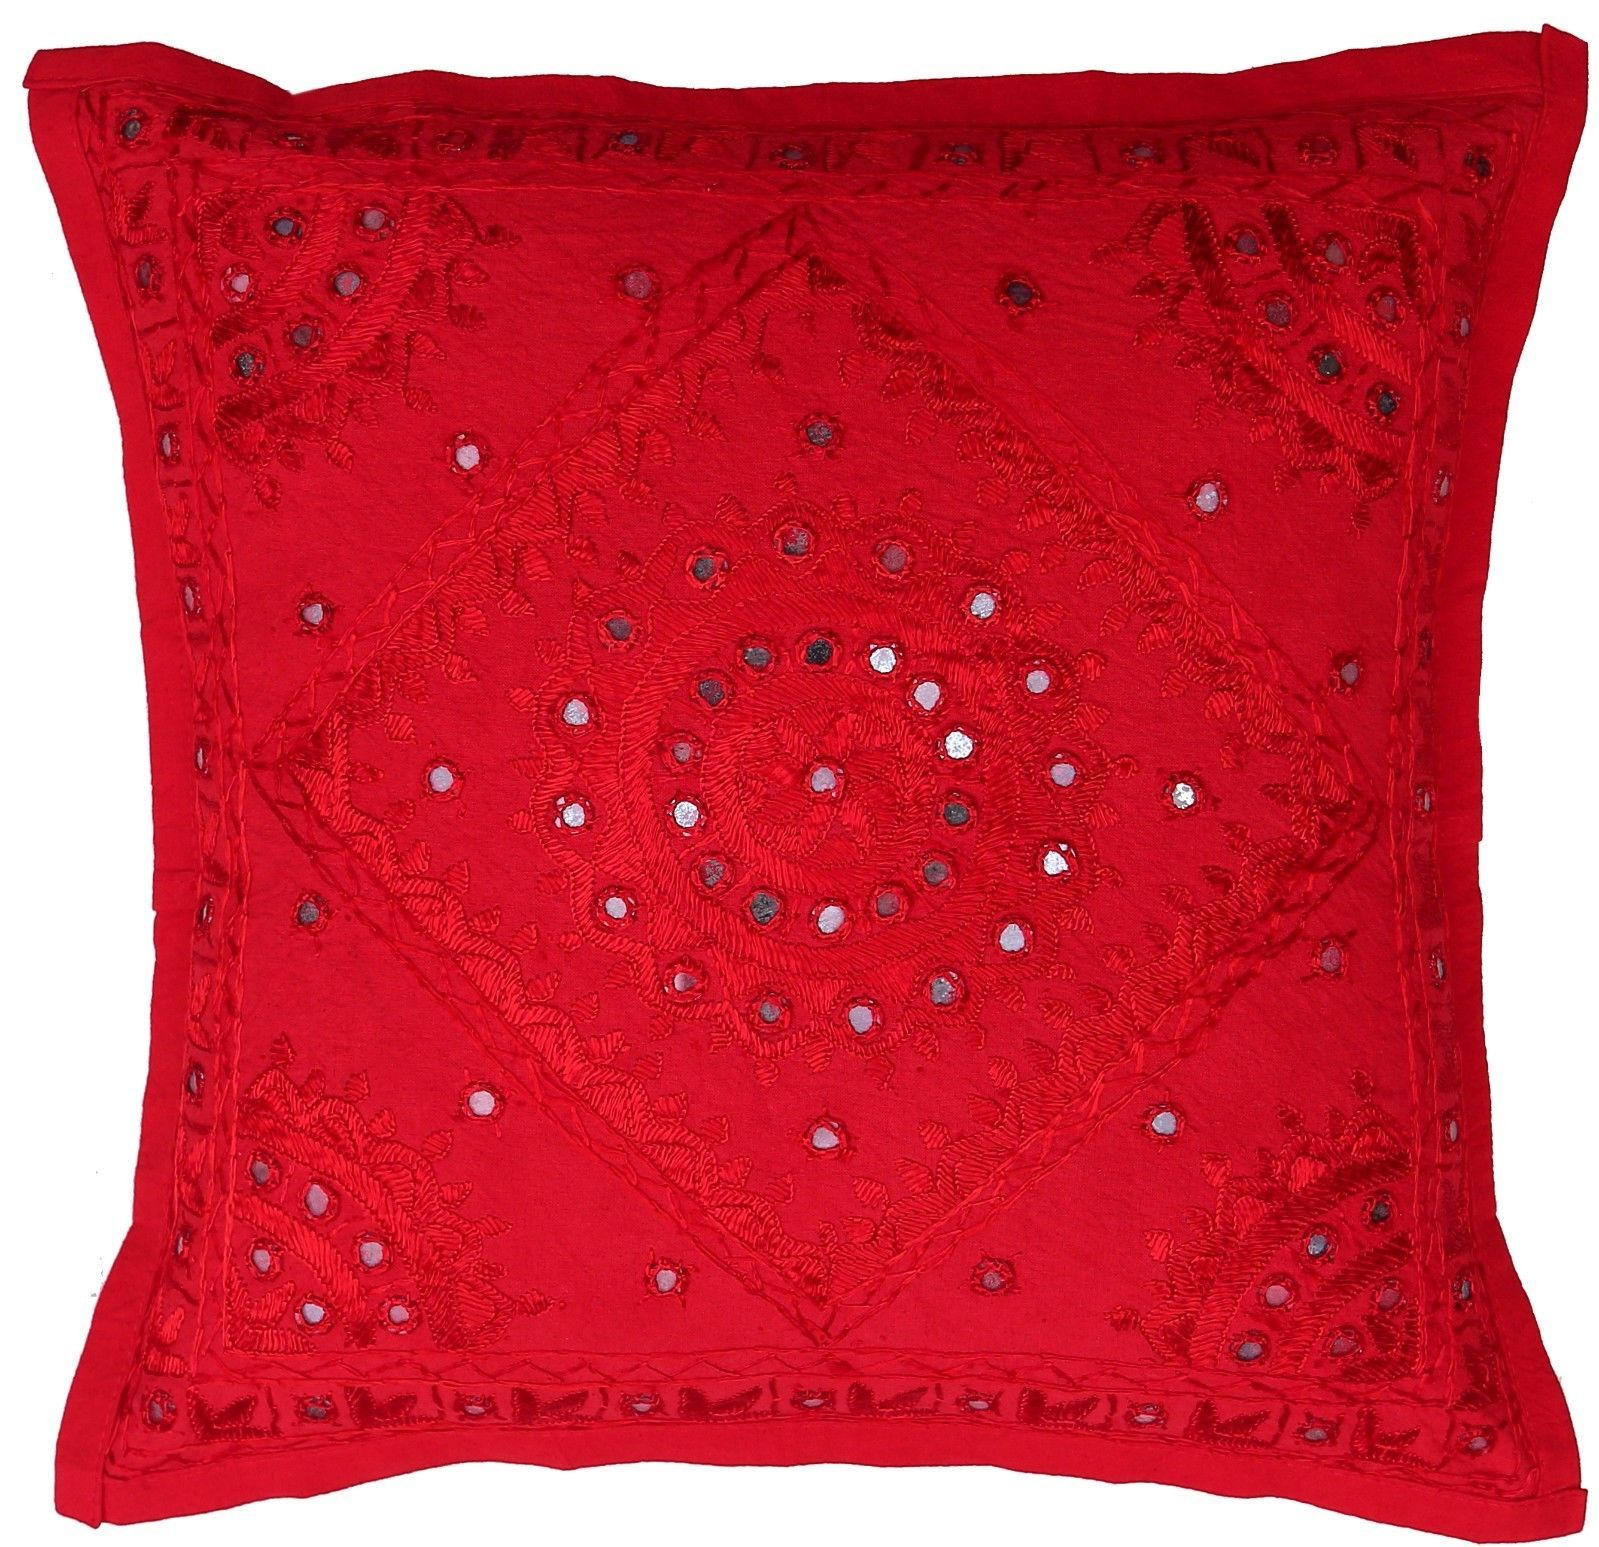 "Primary image for 16""/24"" Red Mirror Embroidered Pillow Cushion Cover Sofa Throw Christmas Decor"